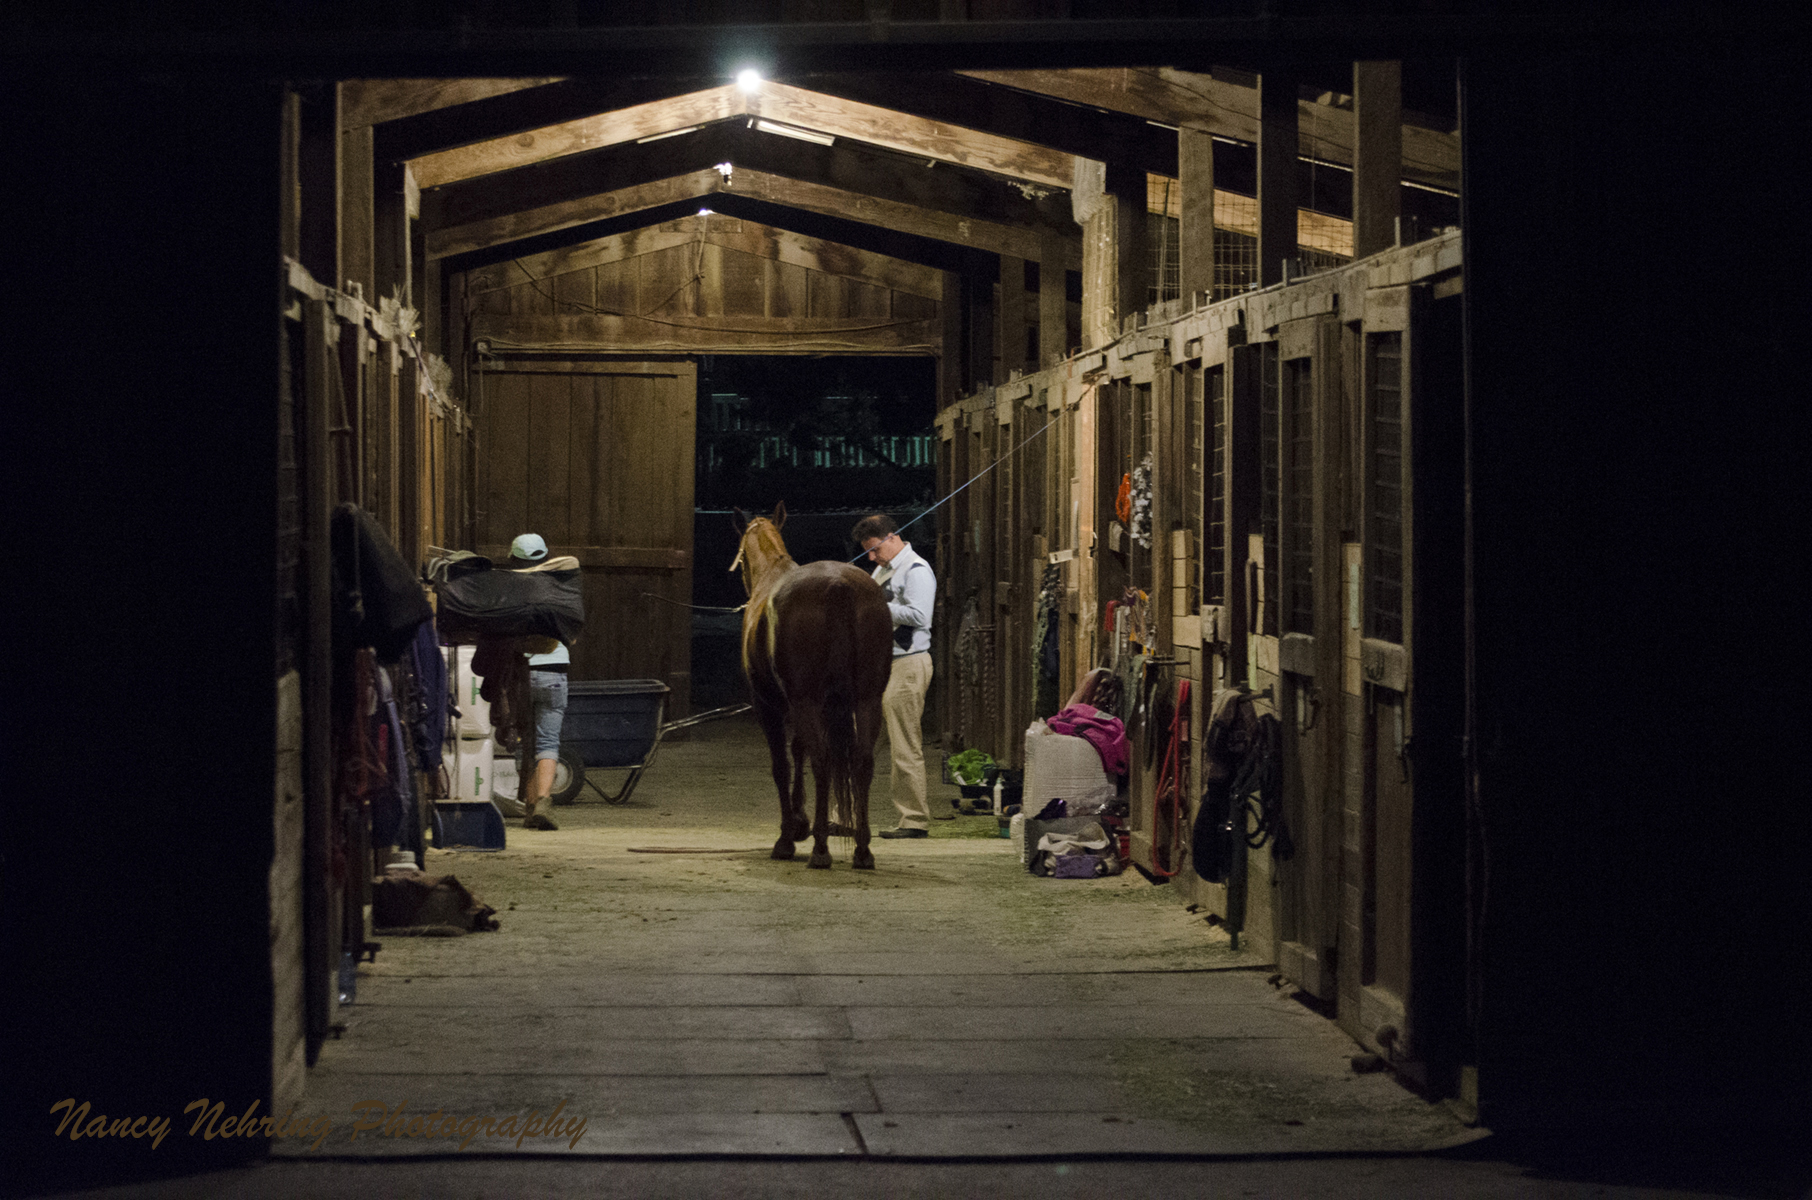 Horse stable at night with man grooming horse.